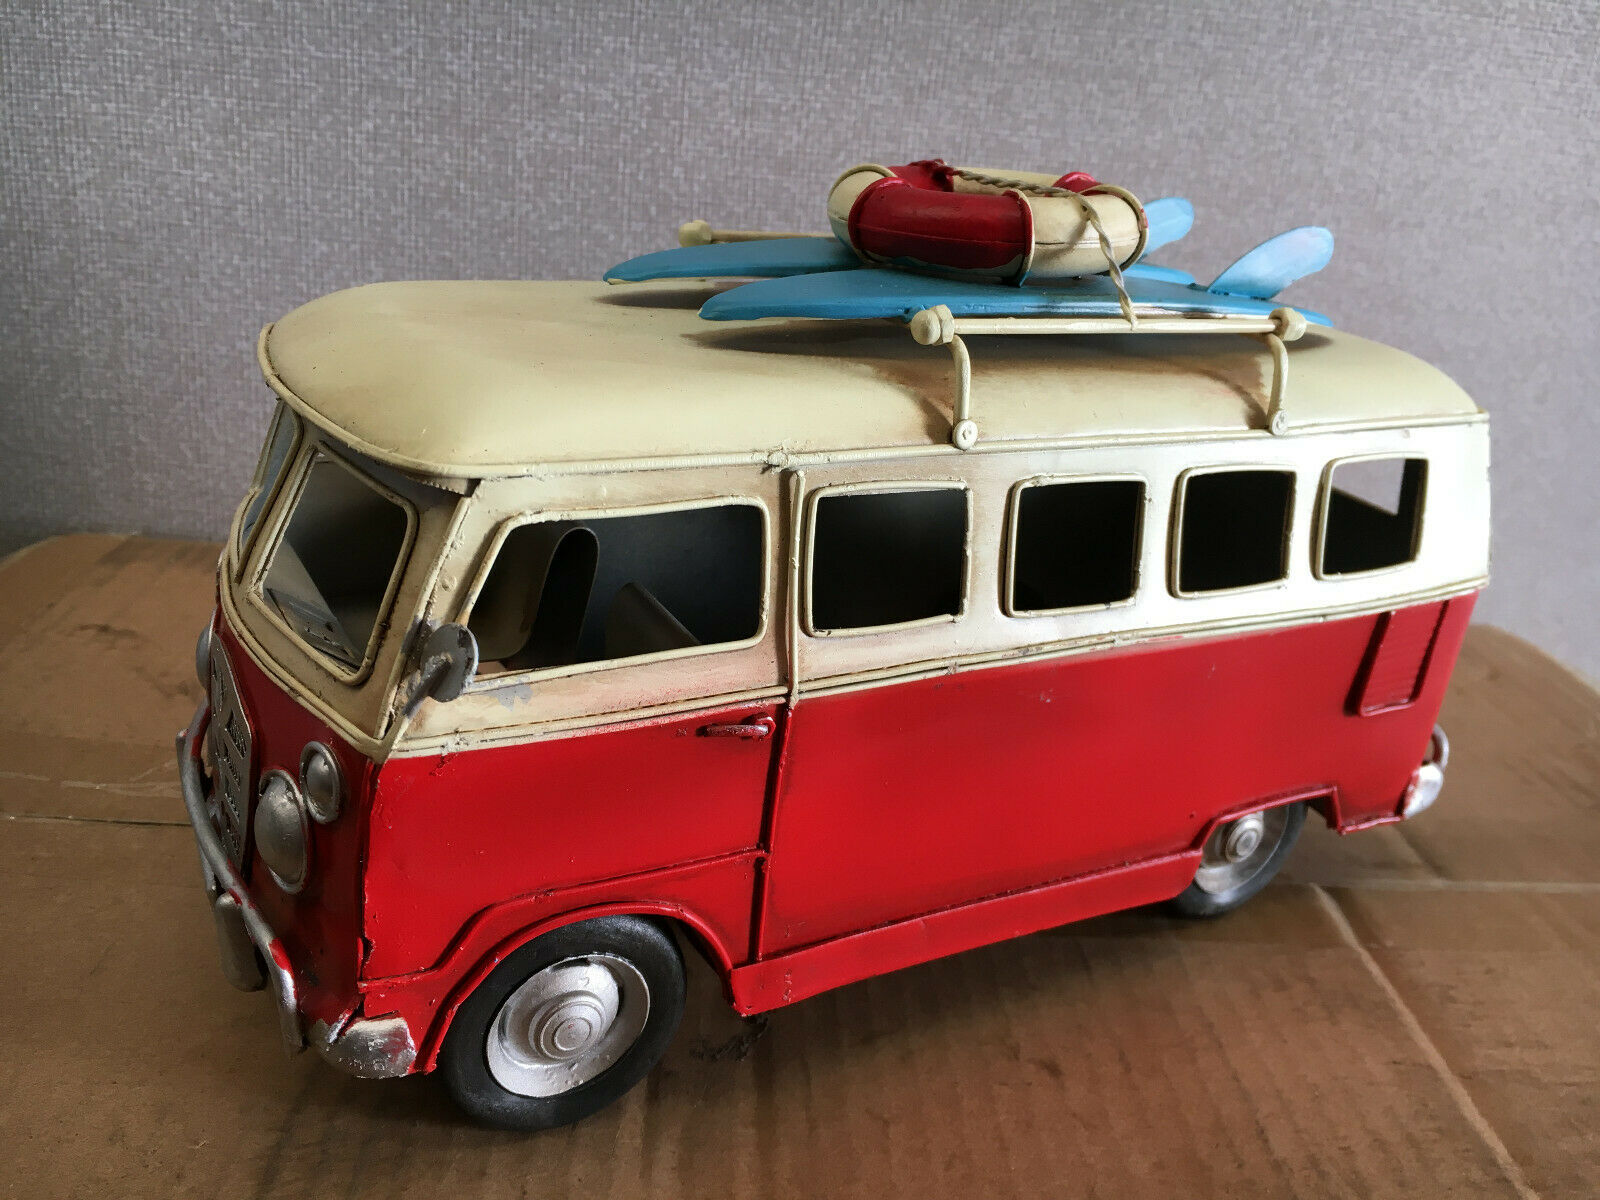 Red Tin Vintage Camper Van With Surf Boards and Life Saving Ring Model